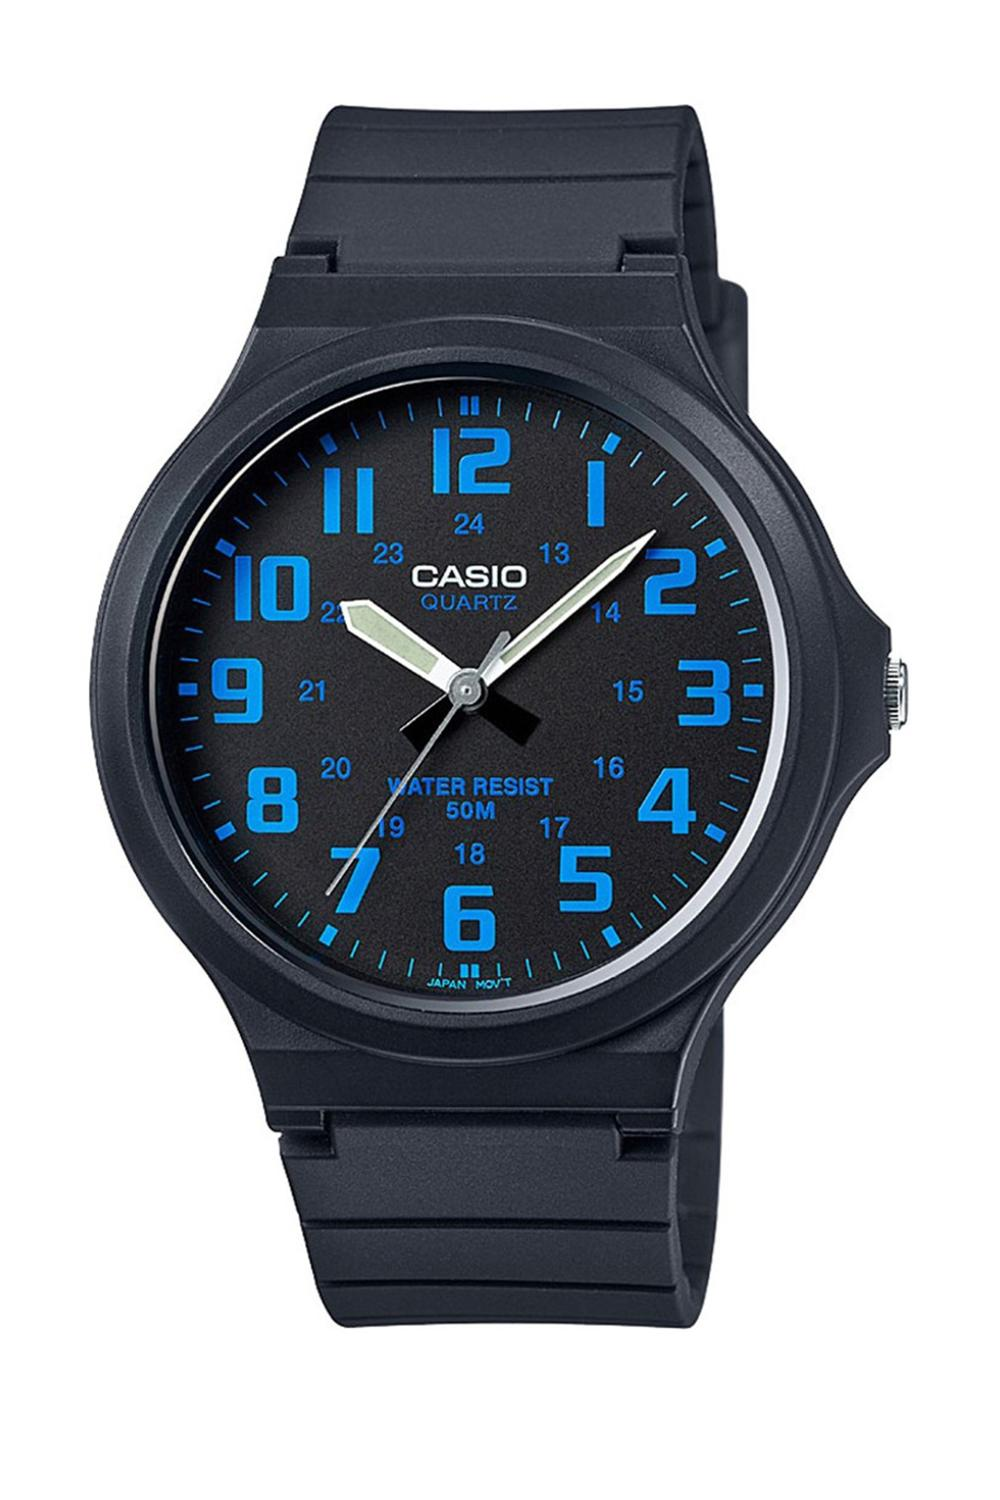 Casio Men's  Quartz Casual Watch  %100 Original Luxury Set 50m. Waterproof  Fasion Men Watch 'Easy To Read' MW240